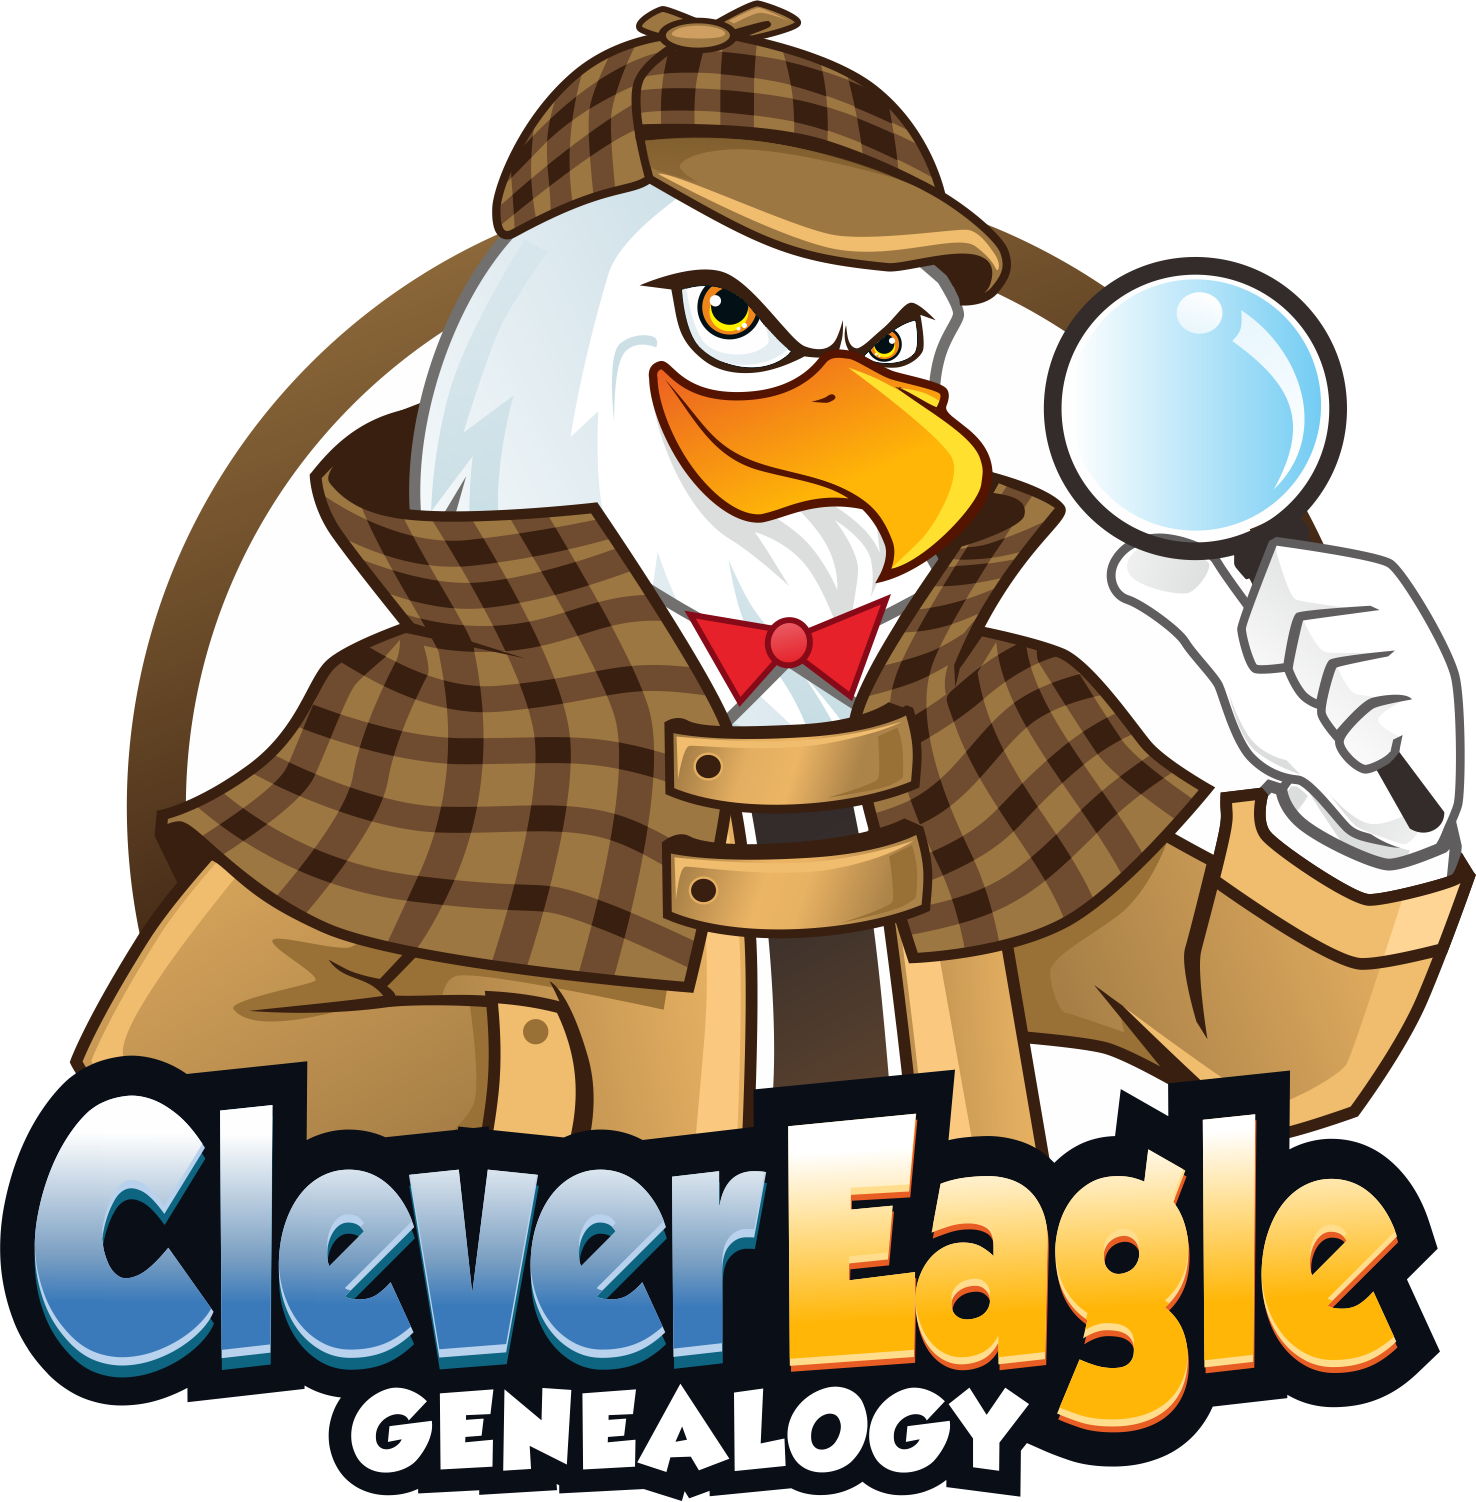 30-something genealogist needs Clever logo!